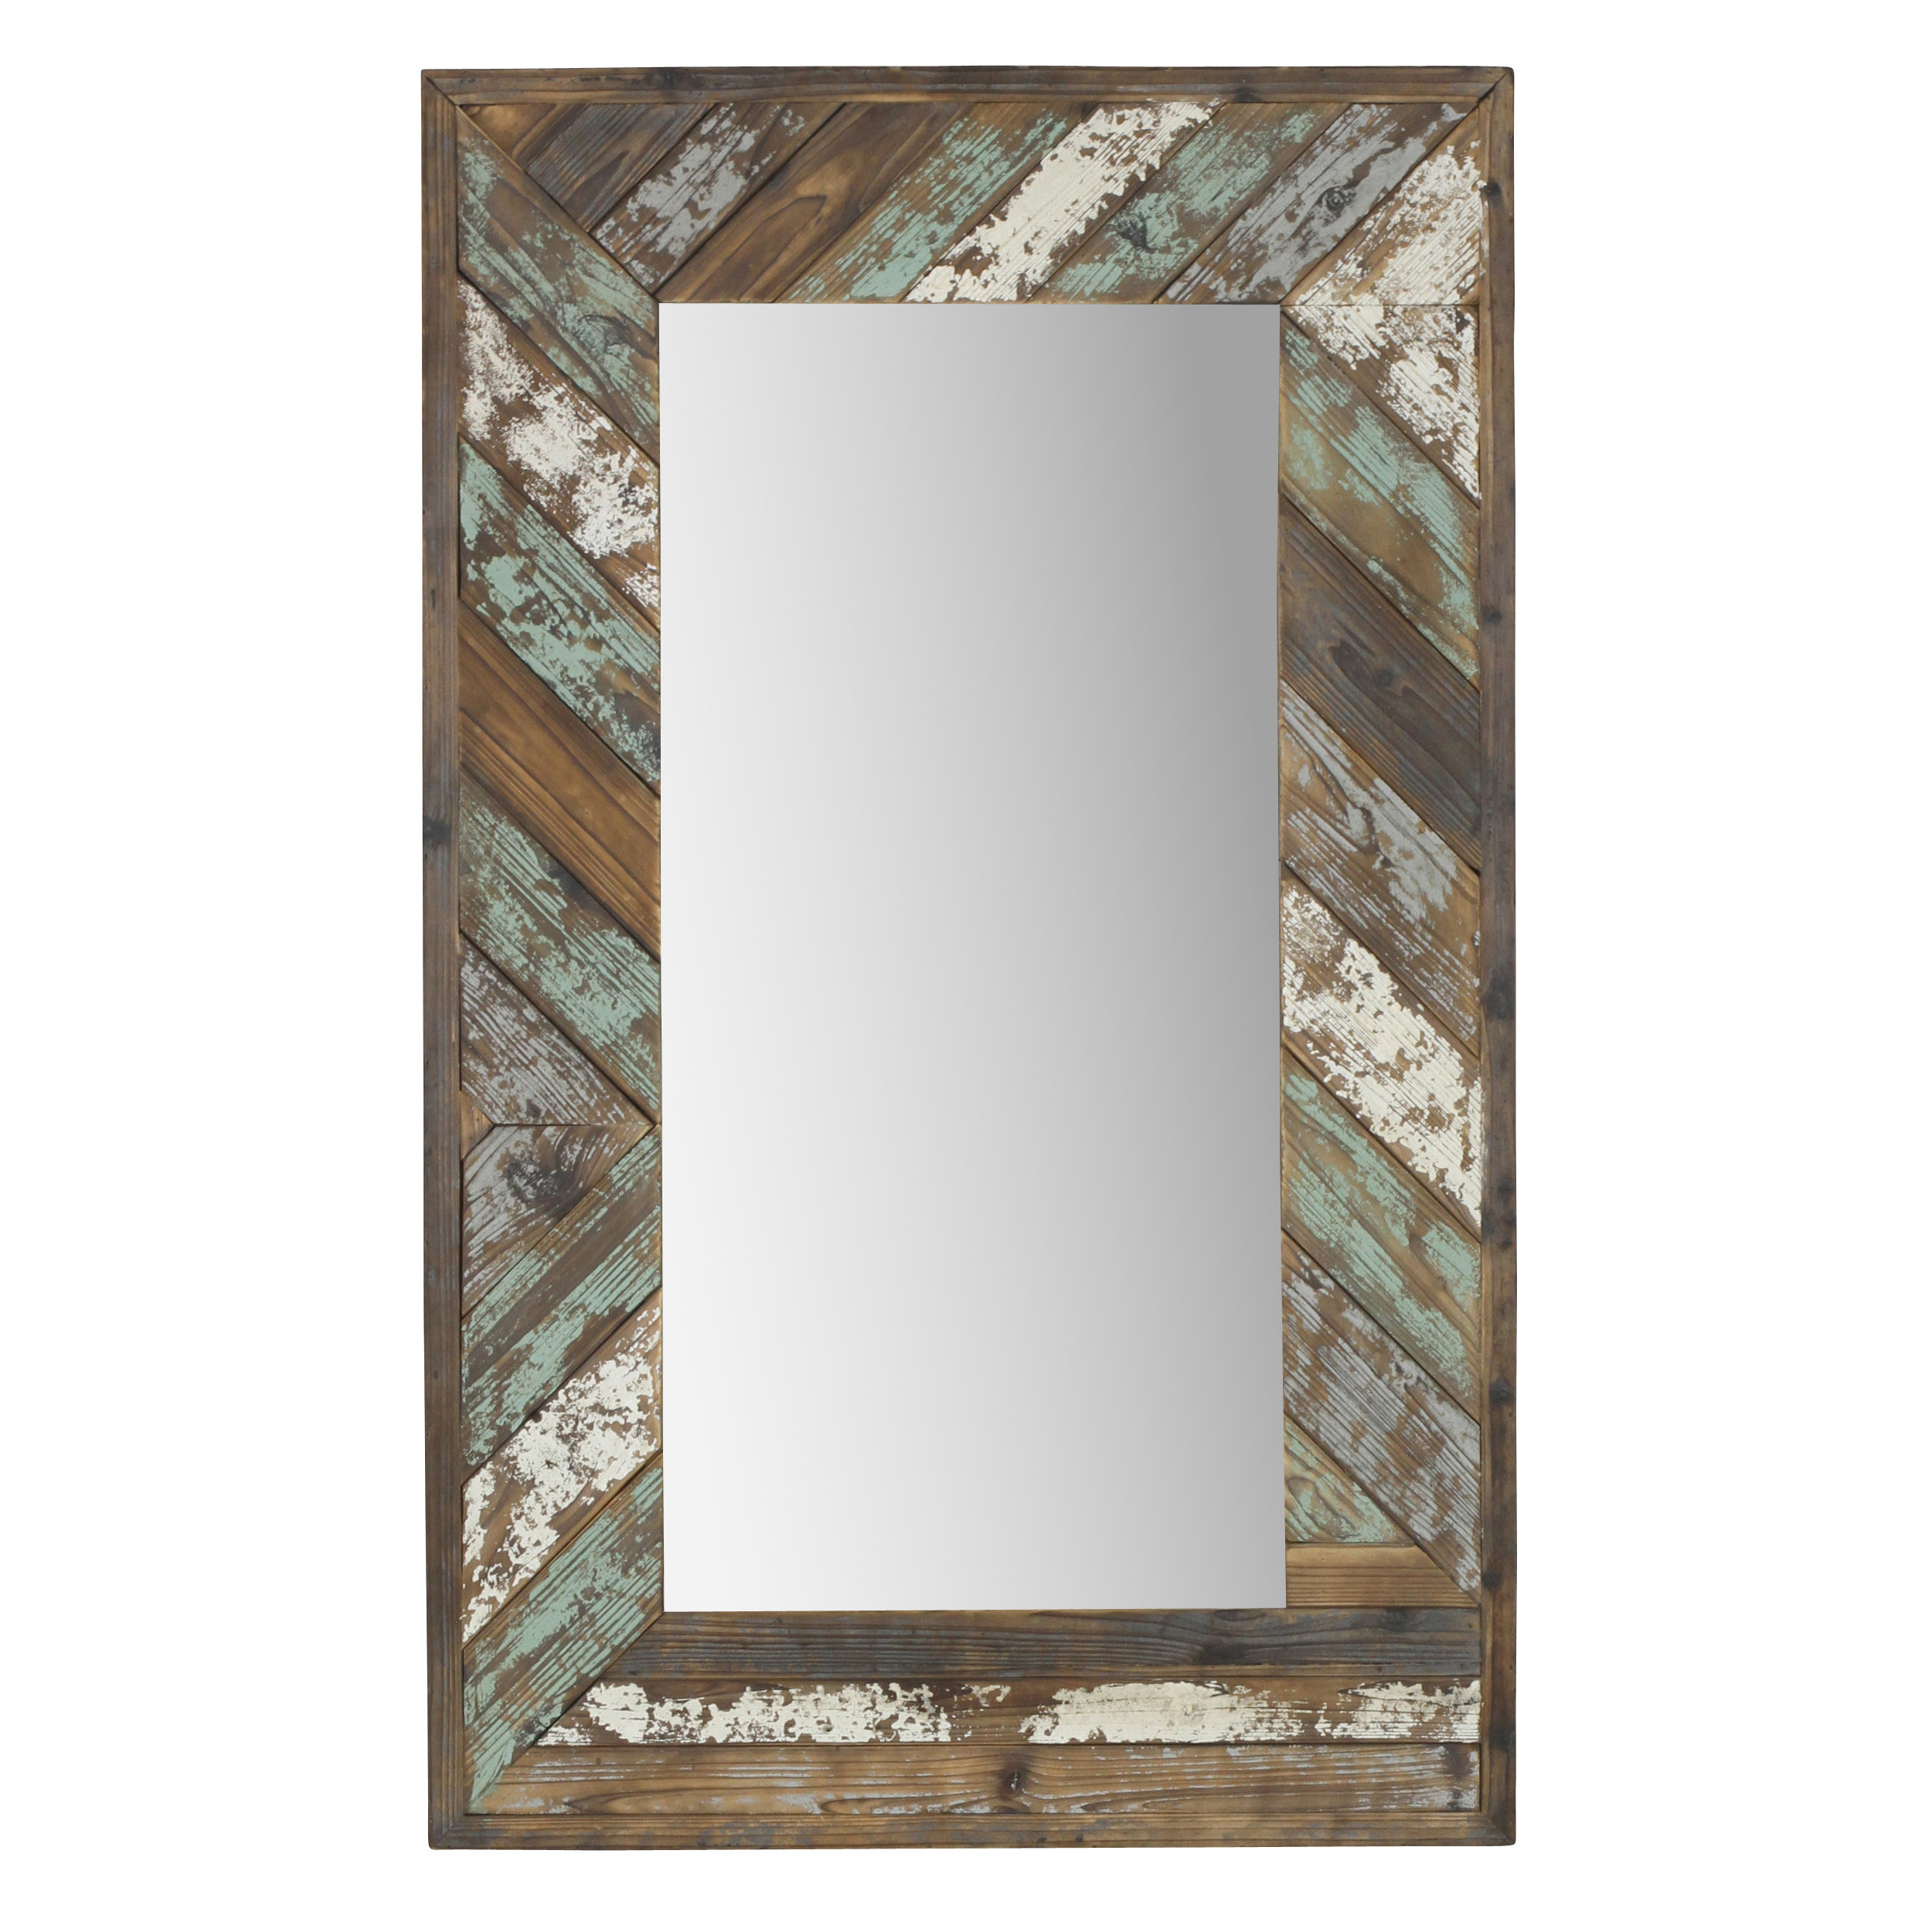 Favorite Yorktown Distressed Wood Slat Wall Mirror For Stamey Wall Mirrors (View 5 of 20)